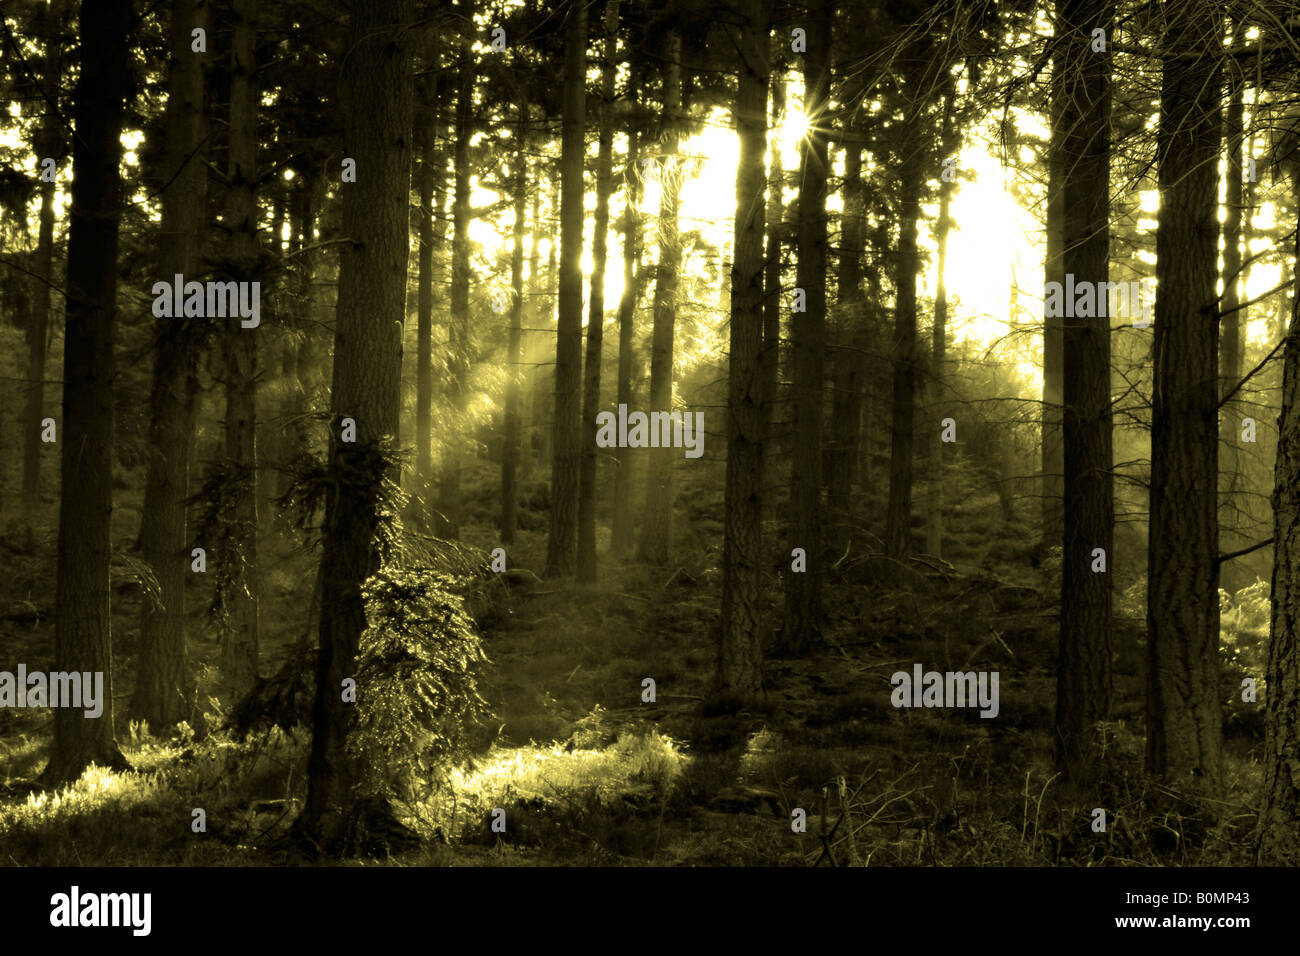 The sun shining through forest trees, in monotone - Stock Image